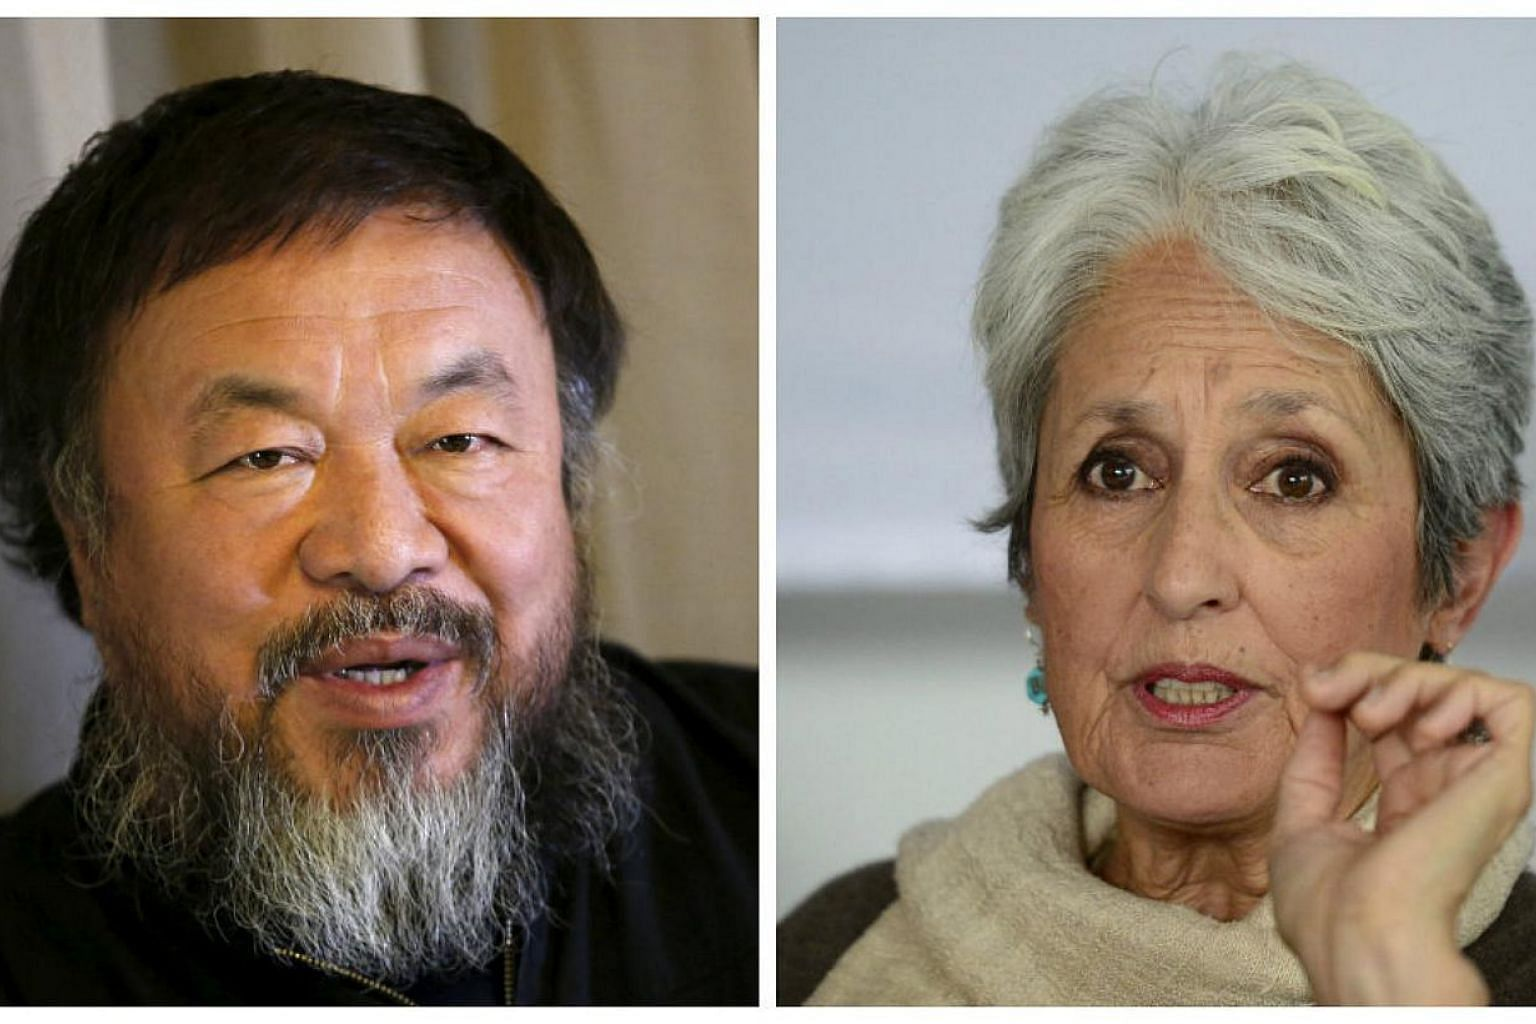 Human rights group Amnesty International on Thursday honoured Chinese dissident artist Ai Weiwei (above left) and US folk singer Joan Baez (above right) as joint winners of its Ambassador of Conscience Award. -- PHOTOS: REUTERS, AFP